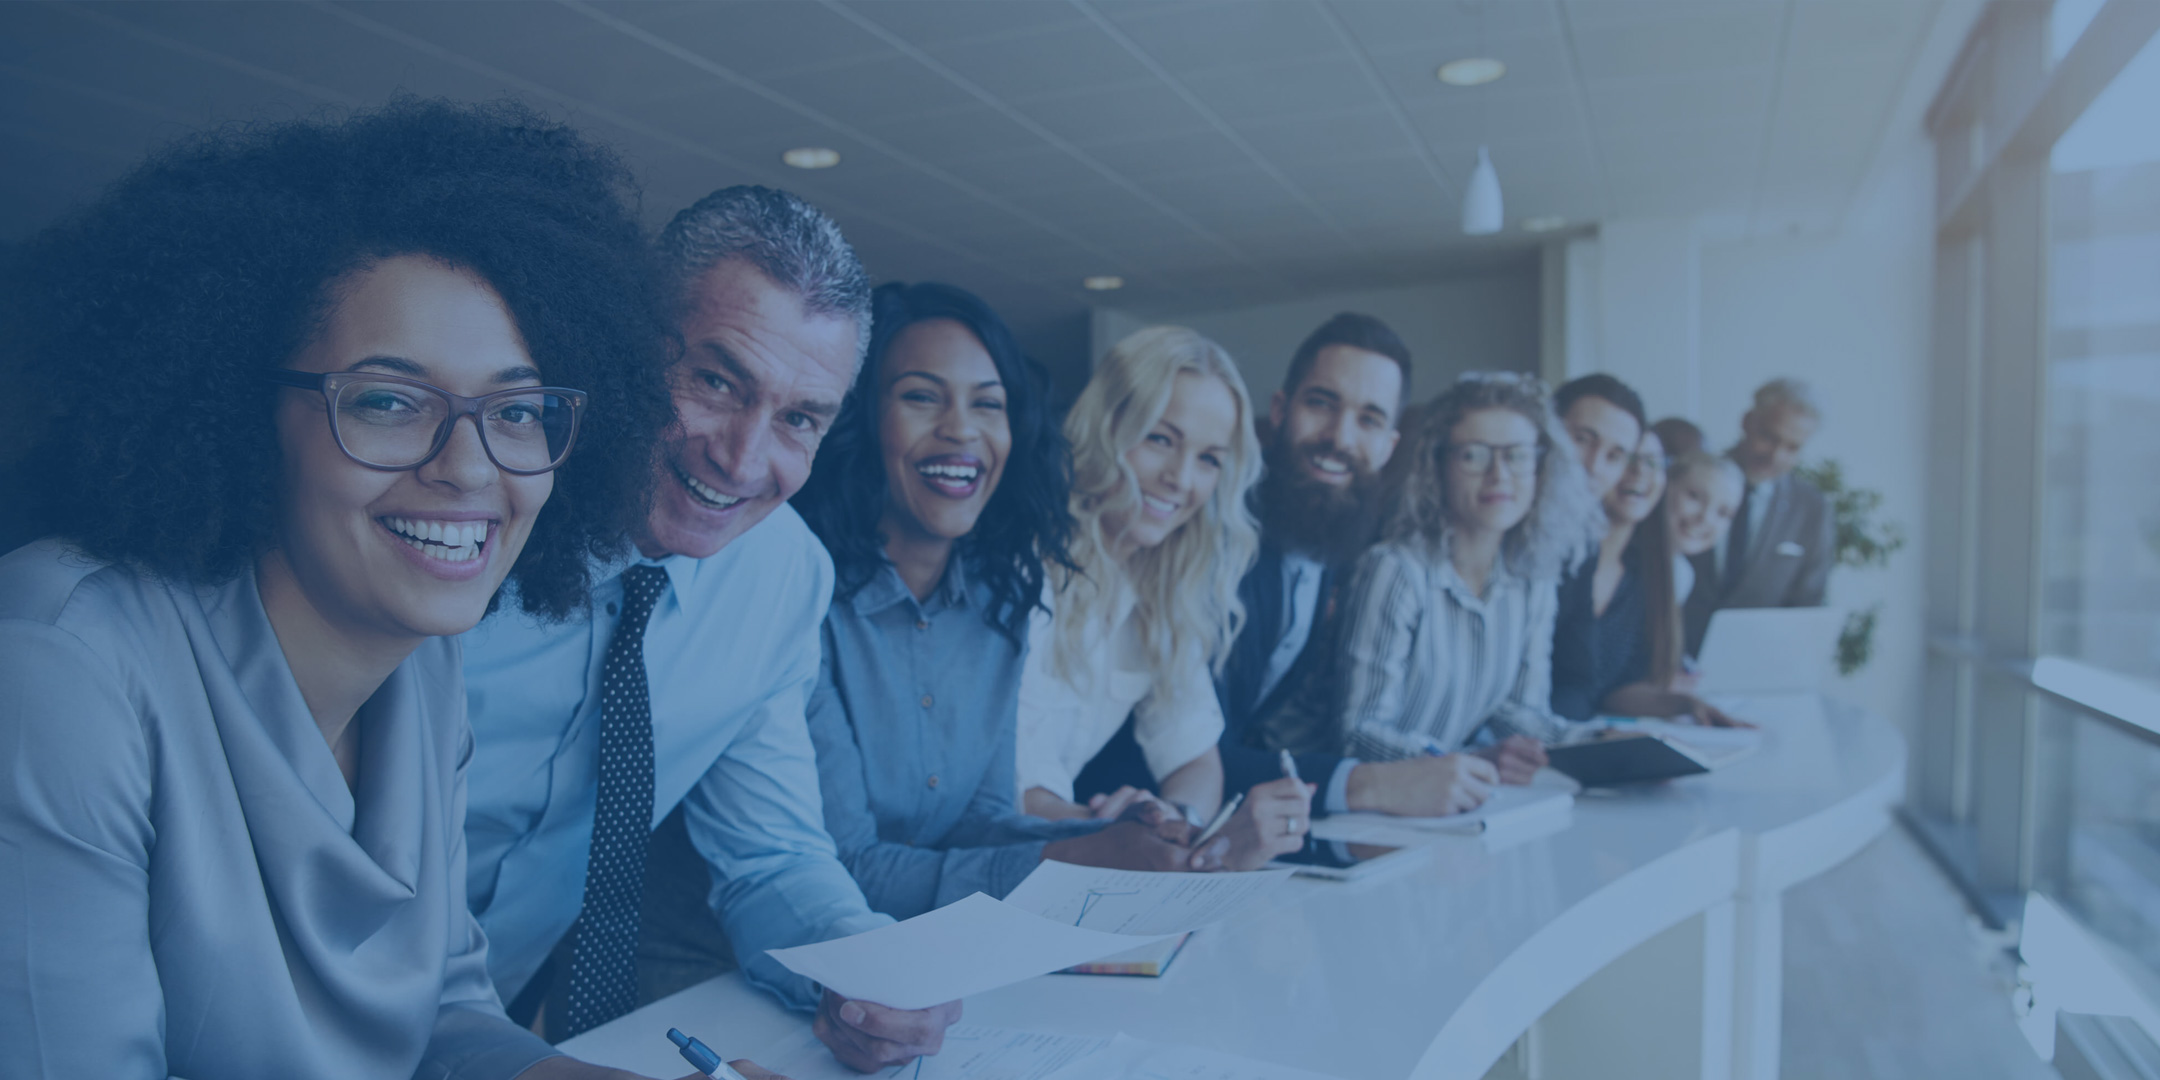 2018 Free Business Conference: Outsourcing for Small Businesses